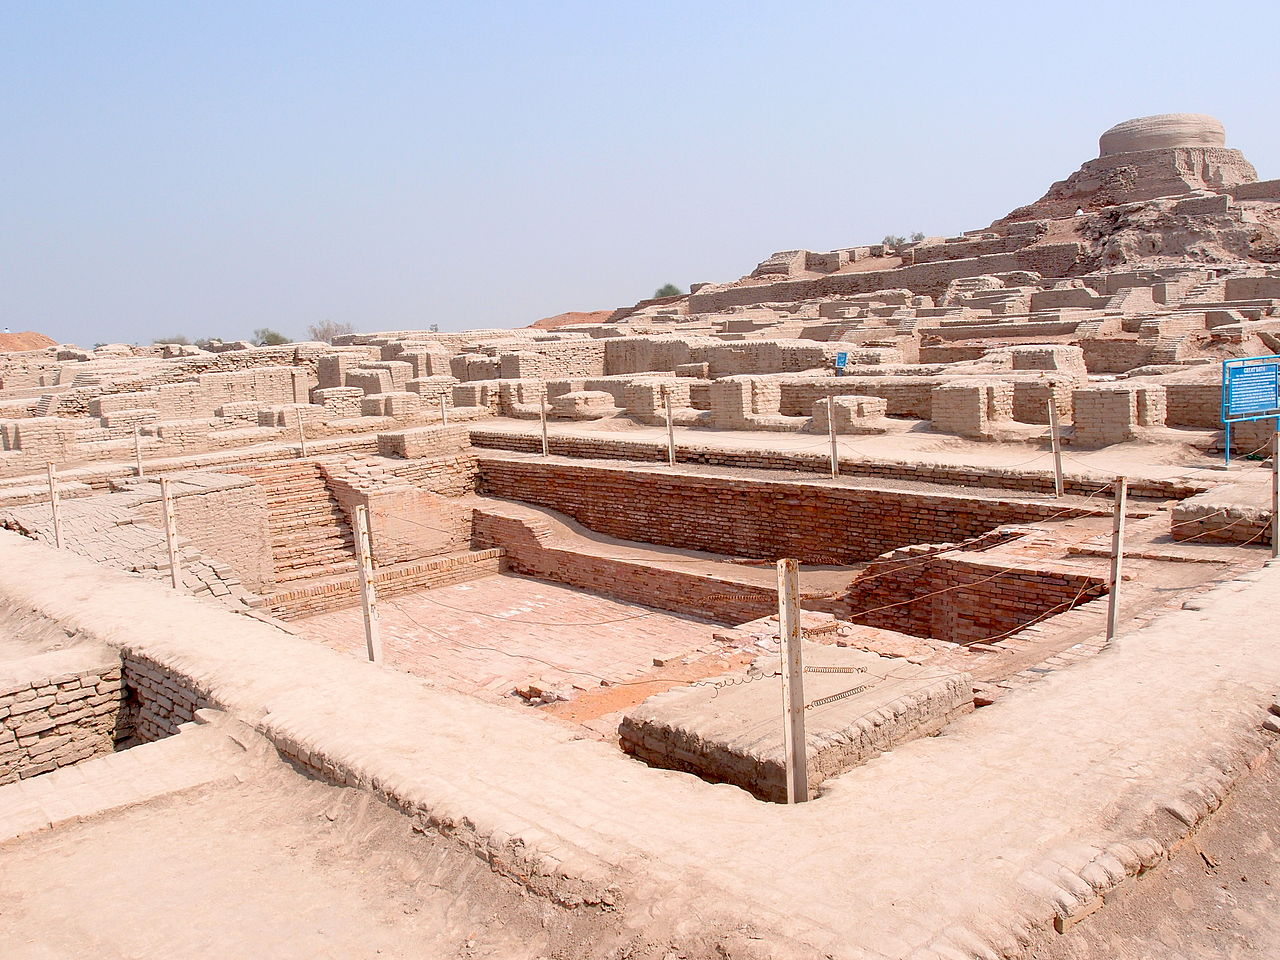 alexander city buddhist dating site It attained its height from the 1st century to the 5th century under the buddhist  dating back to achaemenid persia  in taxila when alexander captured this city.